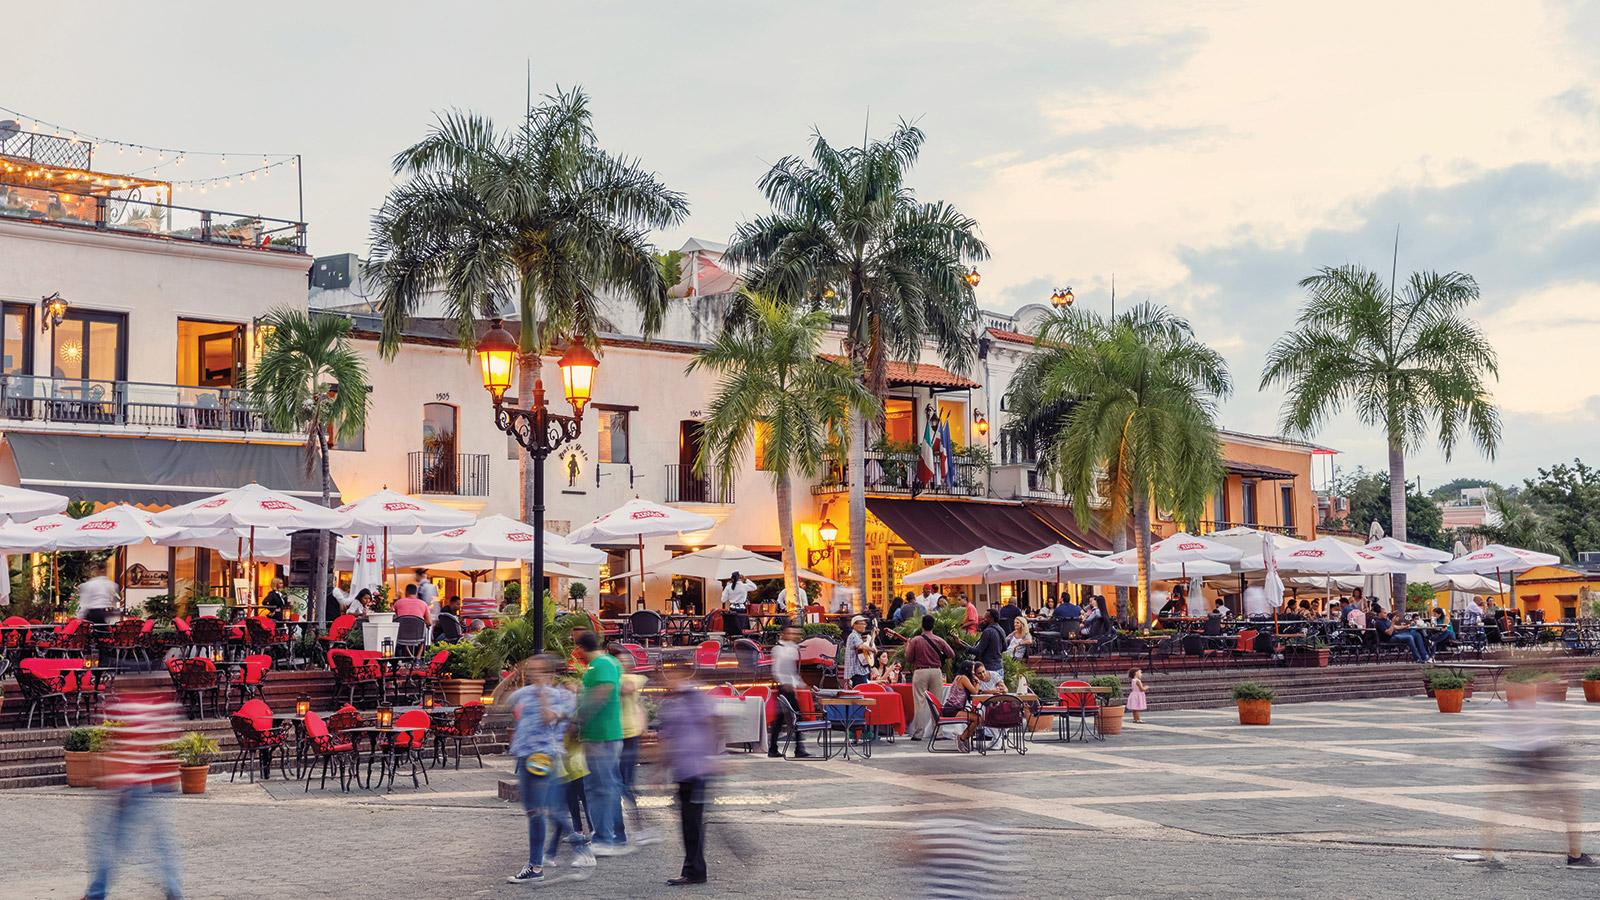 The Plaza de España showcases the beauty and energy of Santo Domingo, the capital of the Dominican Republic.